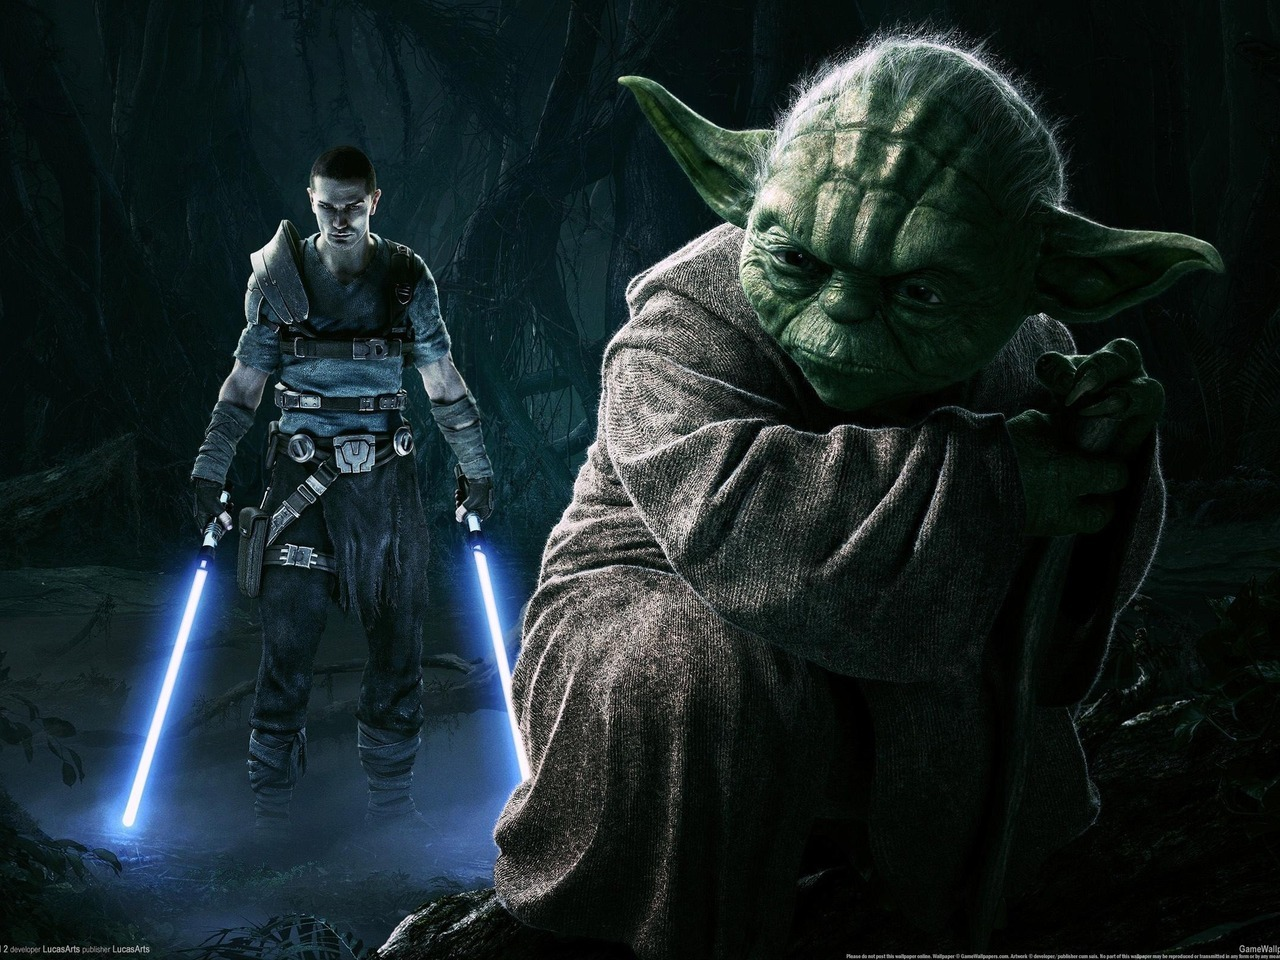 11548 Screensavers and Wallpapers Star Wars for phone. Download Games, Star Wars, Master Yoda pictures for free